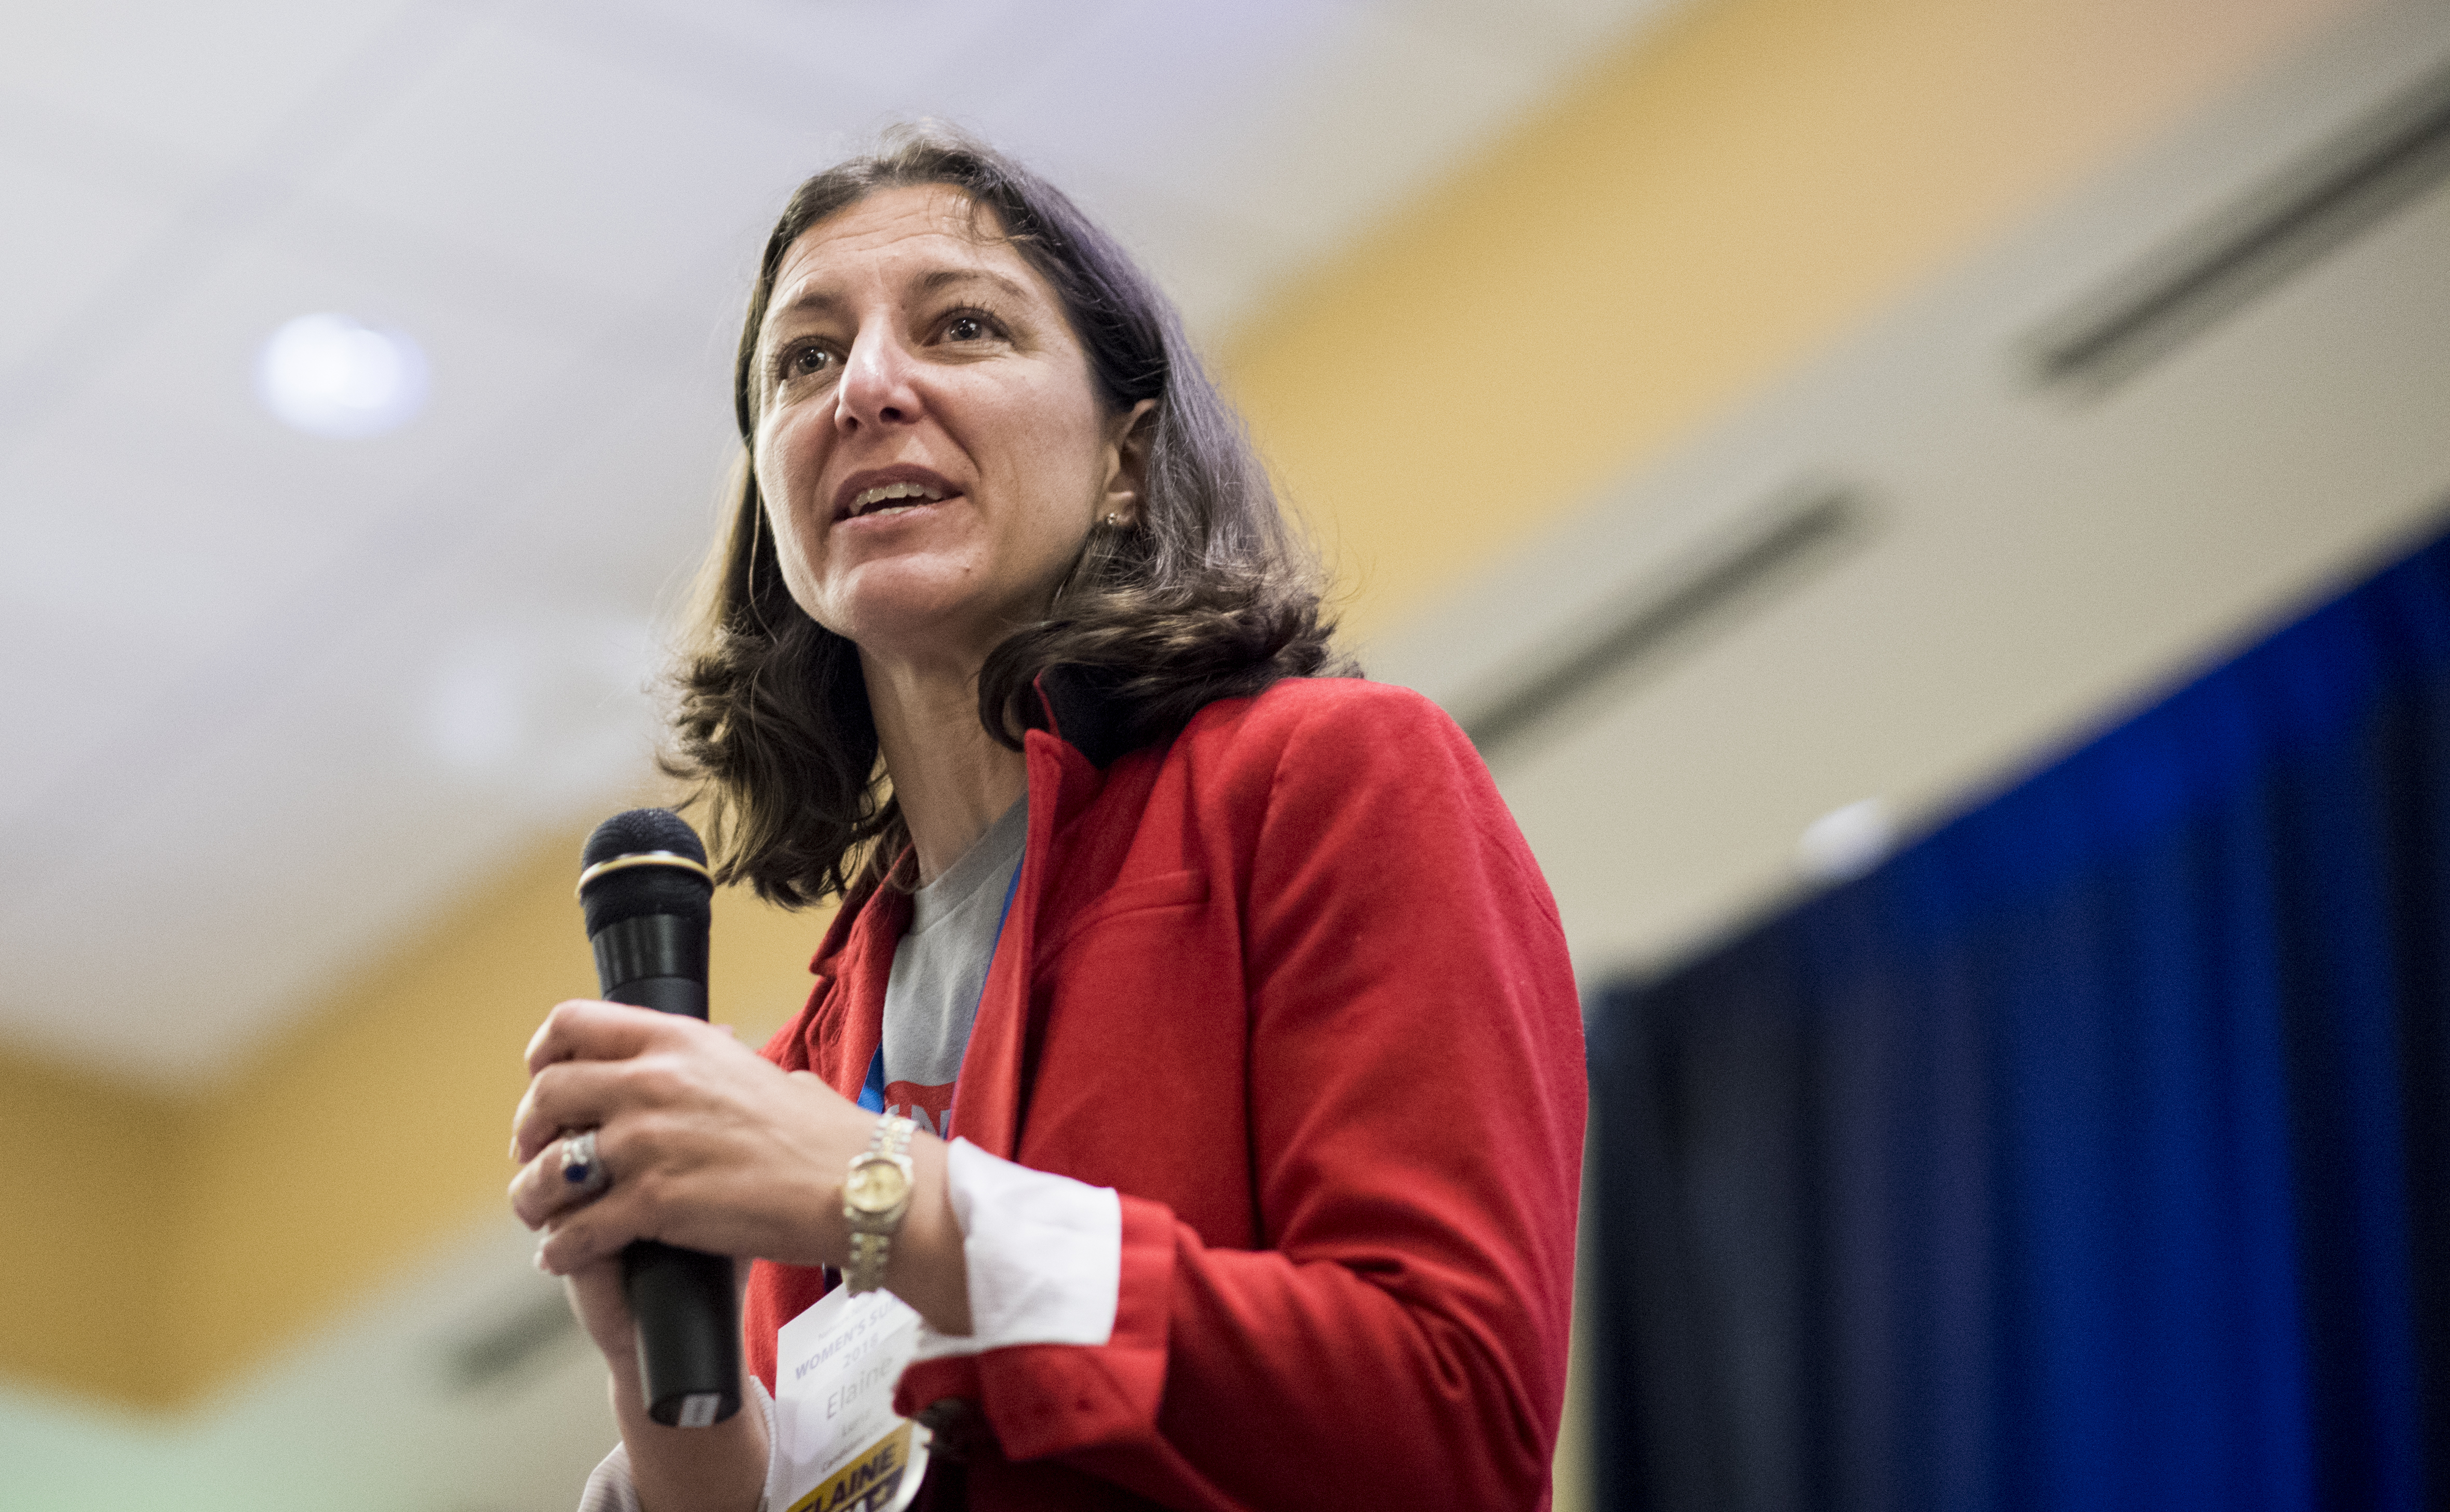 Elaine Luria, Democratic candidate for the 2nd congressional district of Virginia, speaks during the Women's Summit in Herndon, Va., on Saturday June 23, 2018.